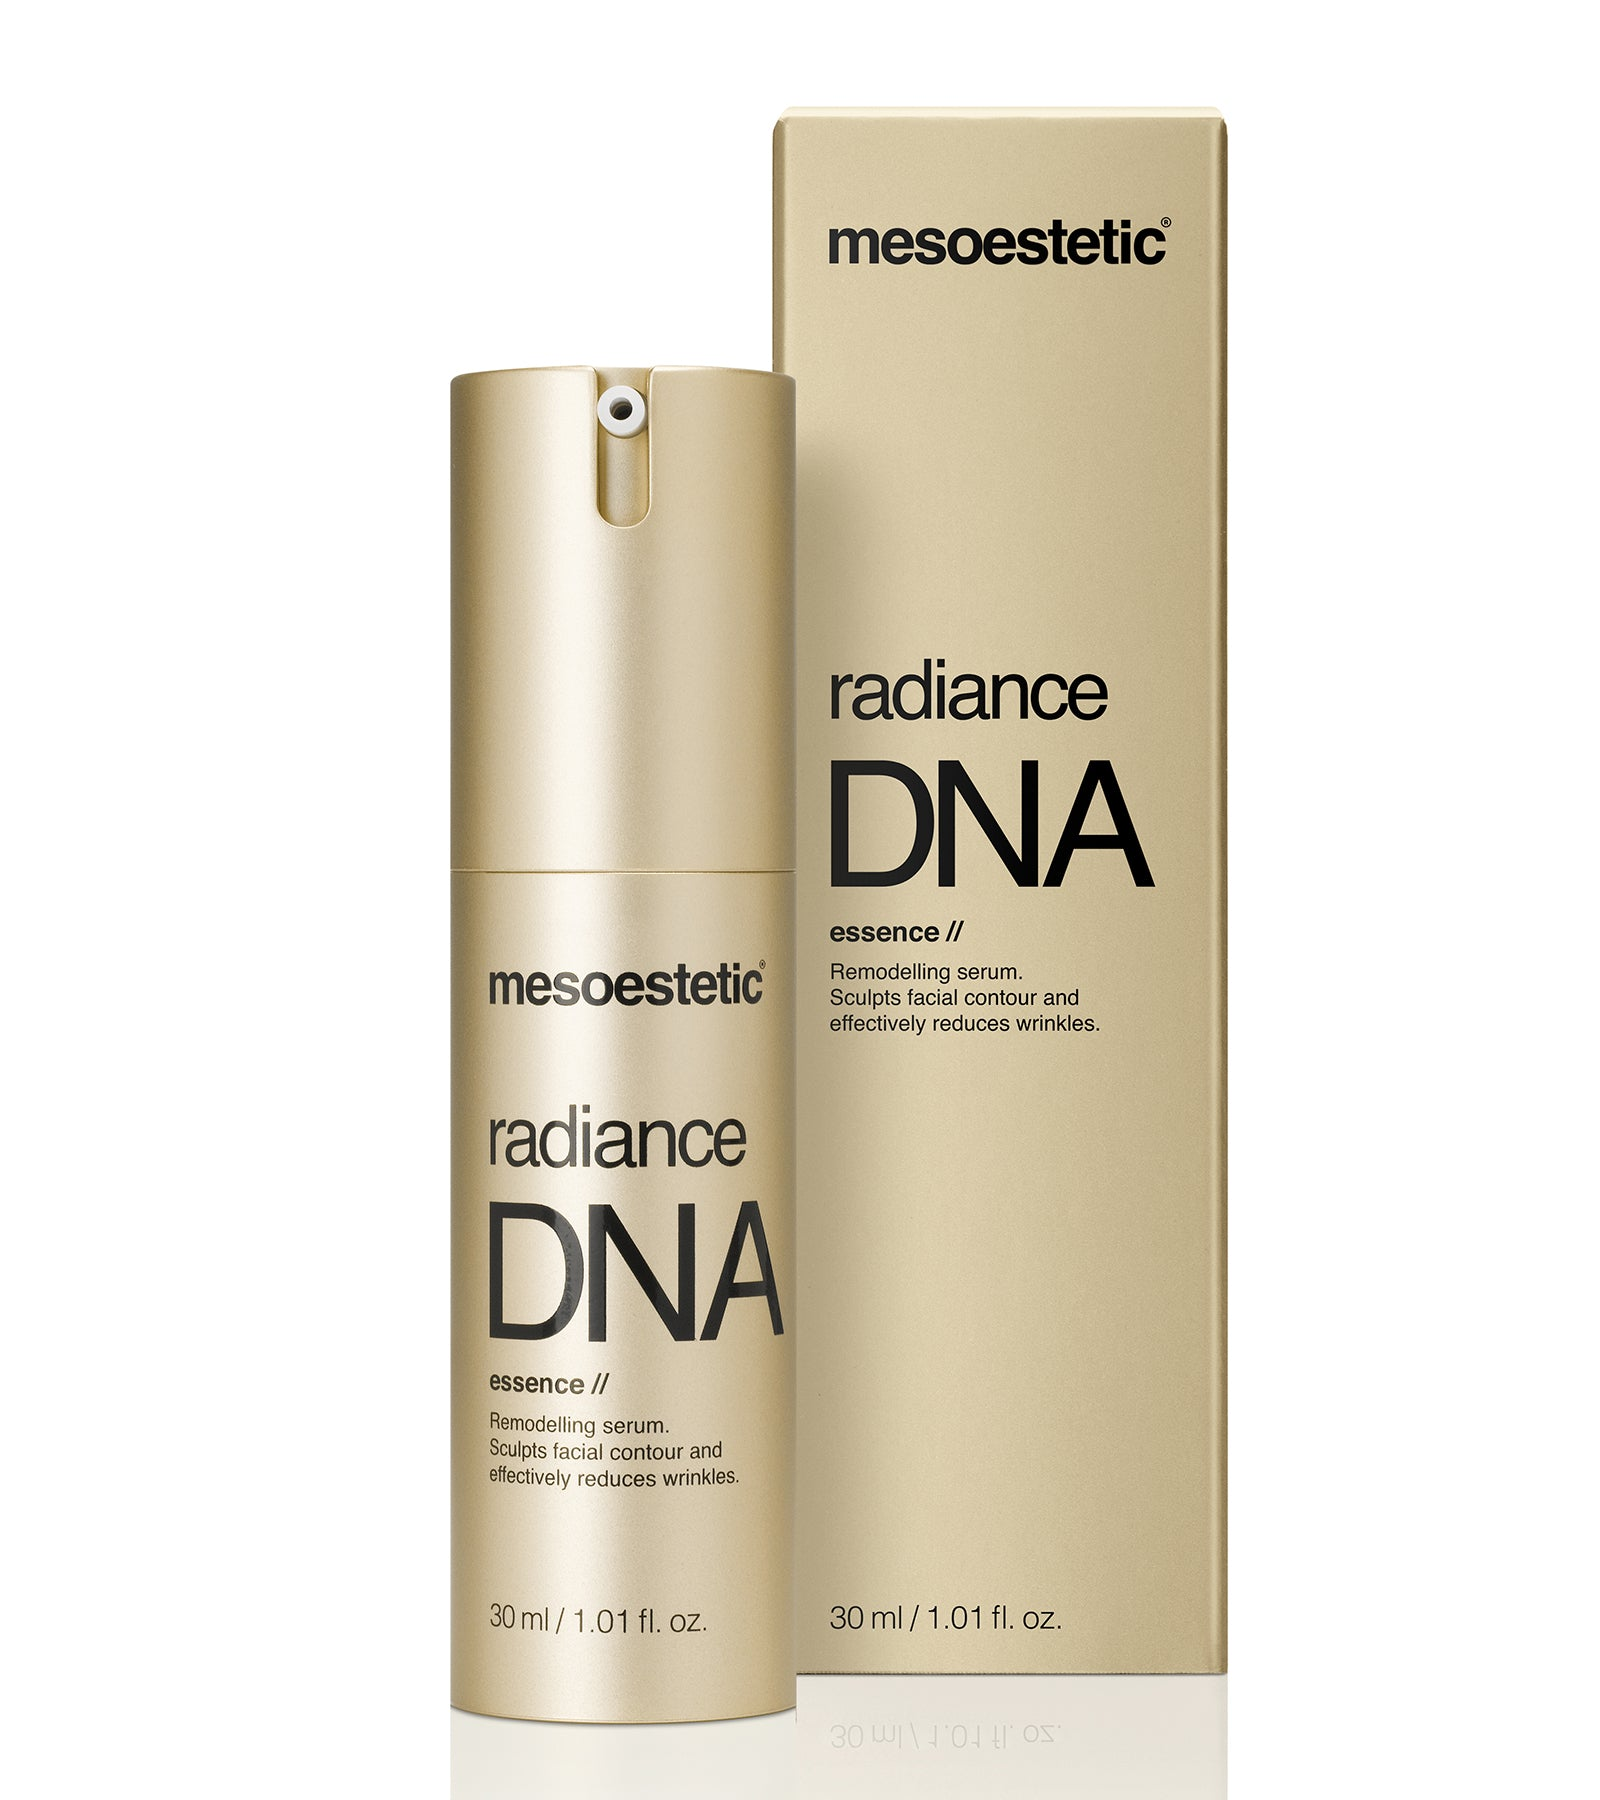 Radiance DNA Essence mesoestetic antioxidant anti age essence serum